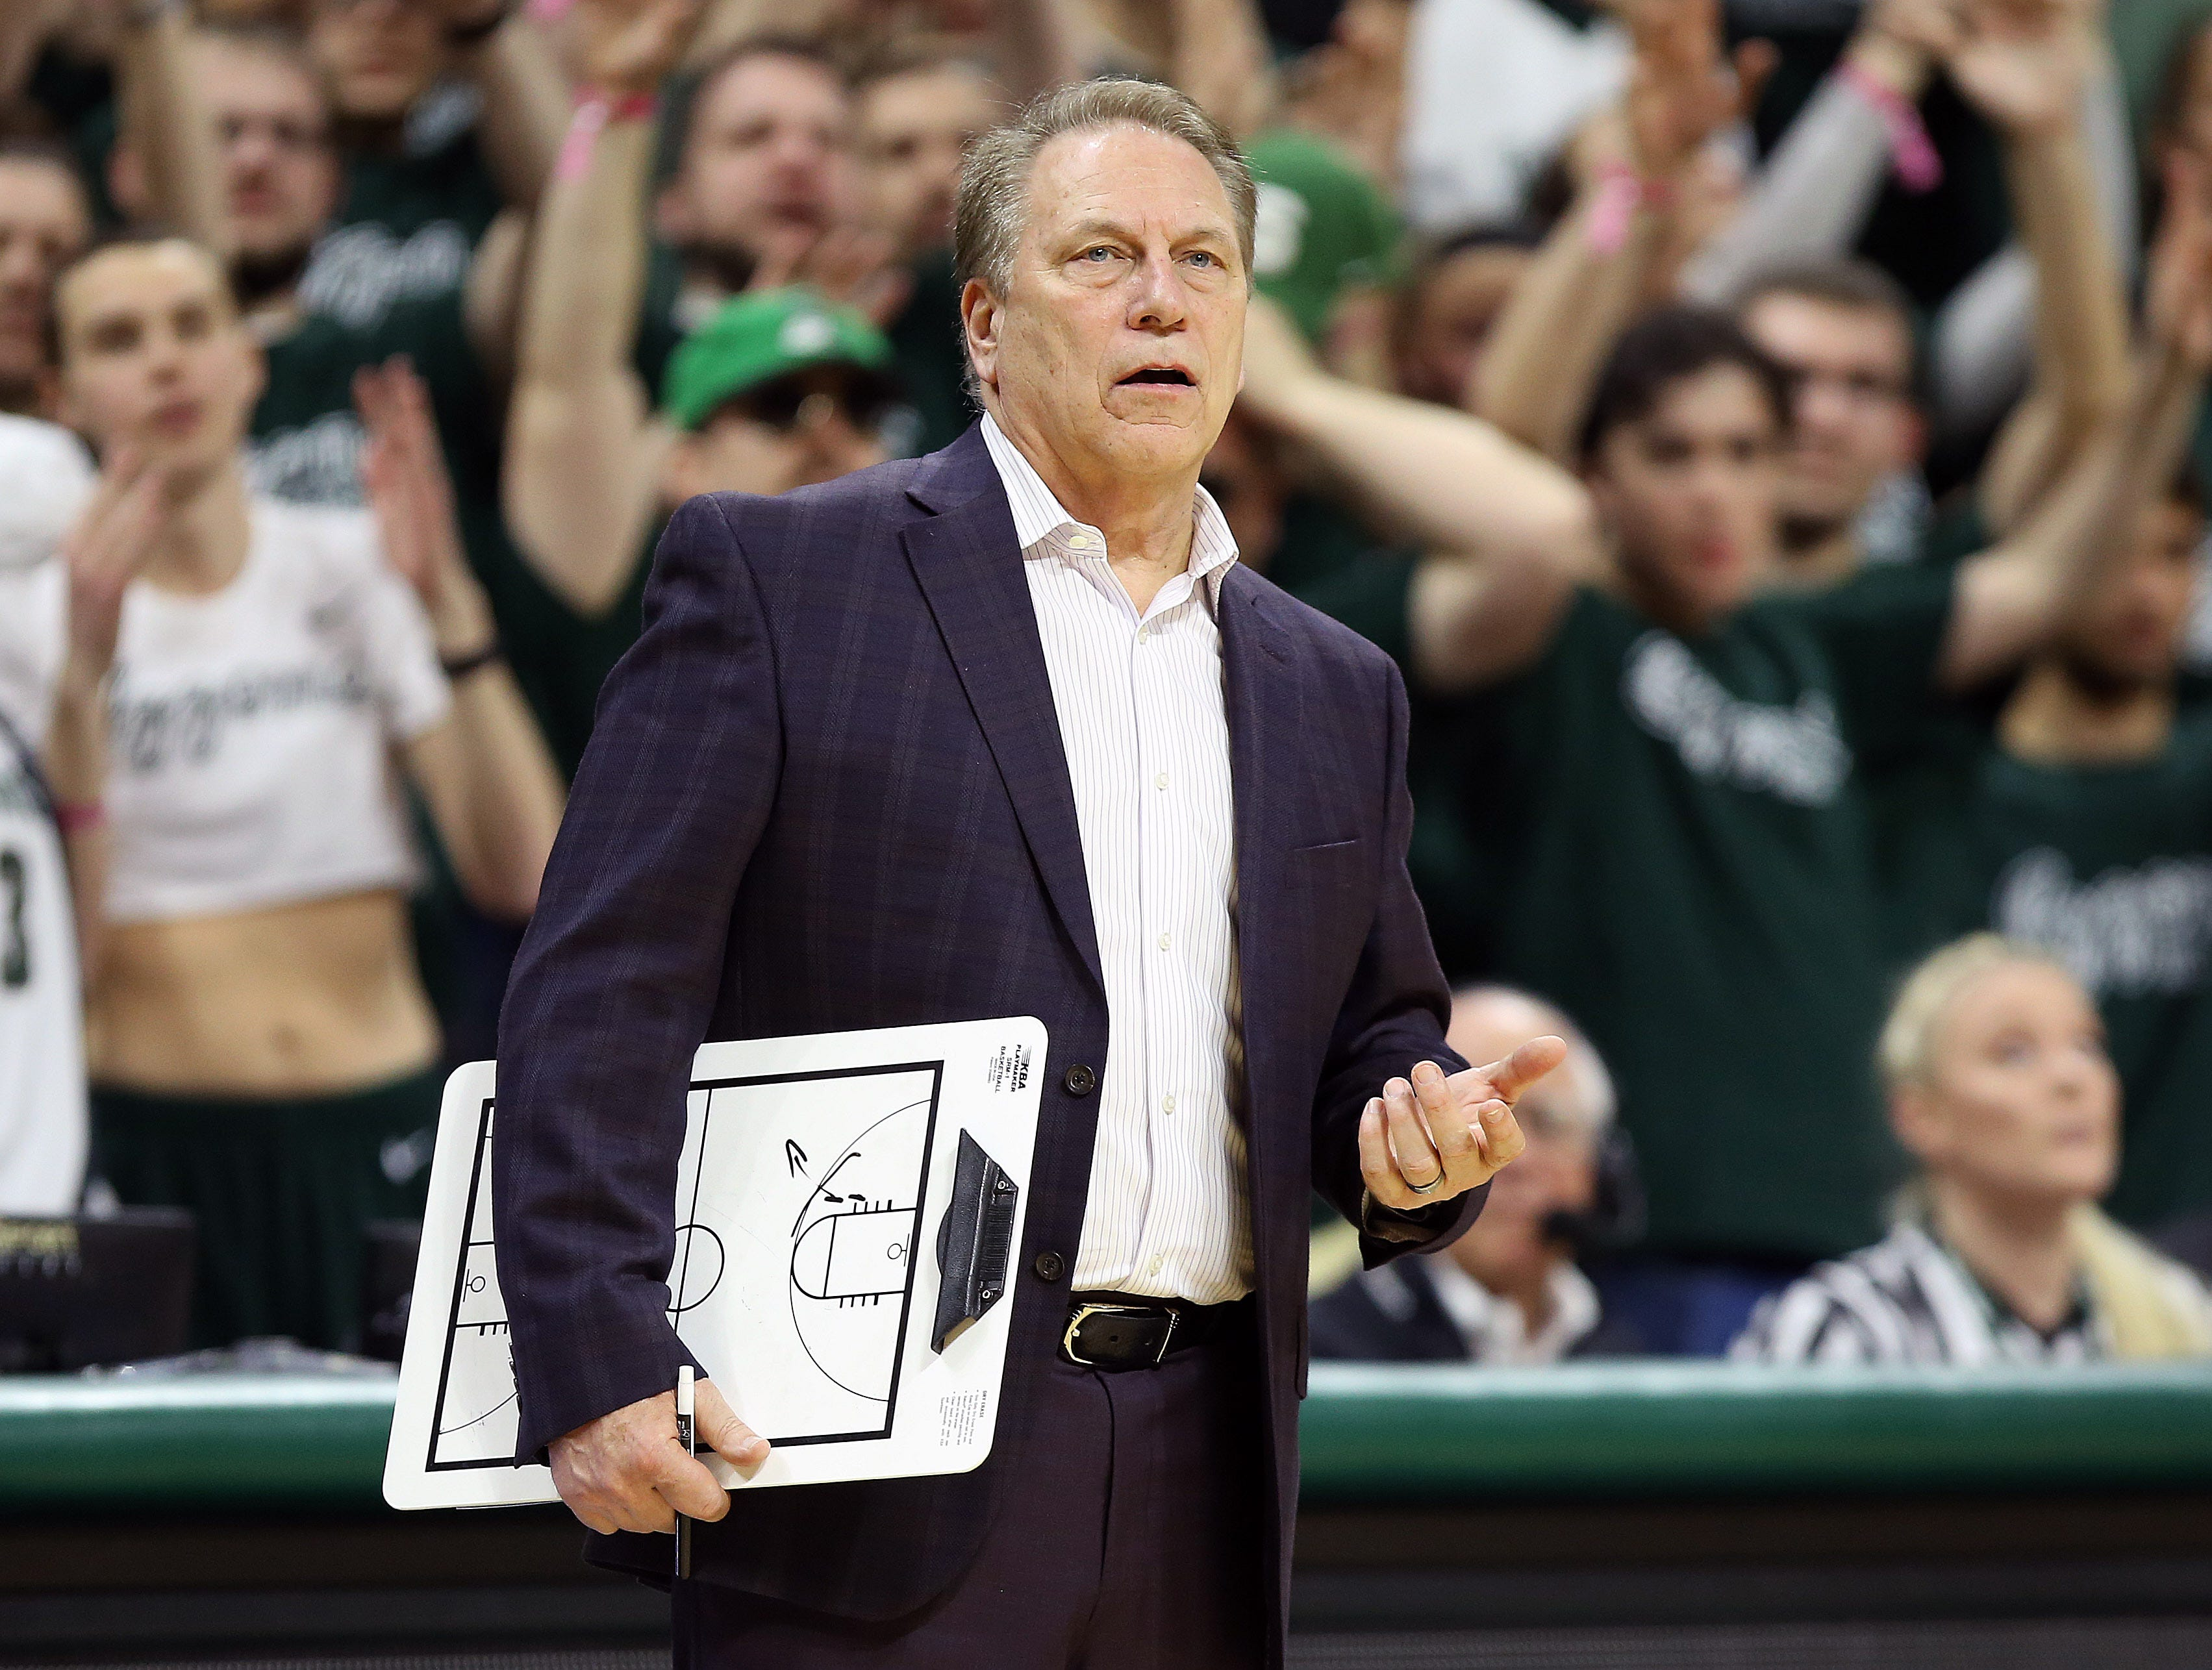 Mar 5, 2019; East Lansing, MI, USA; Michigan State Spartans head coach Tom Izzo reacts during the second half against the Nebraska Cornhuskers at the Breslin Center. Mandatory Credit: Mike Carter-USA TODAY Sports